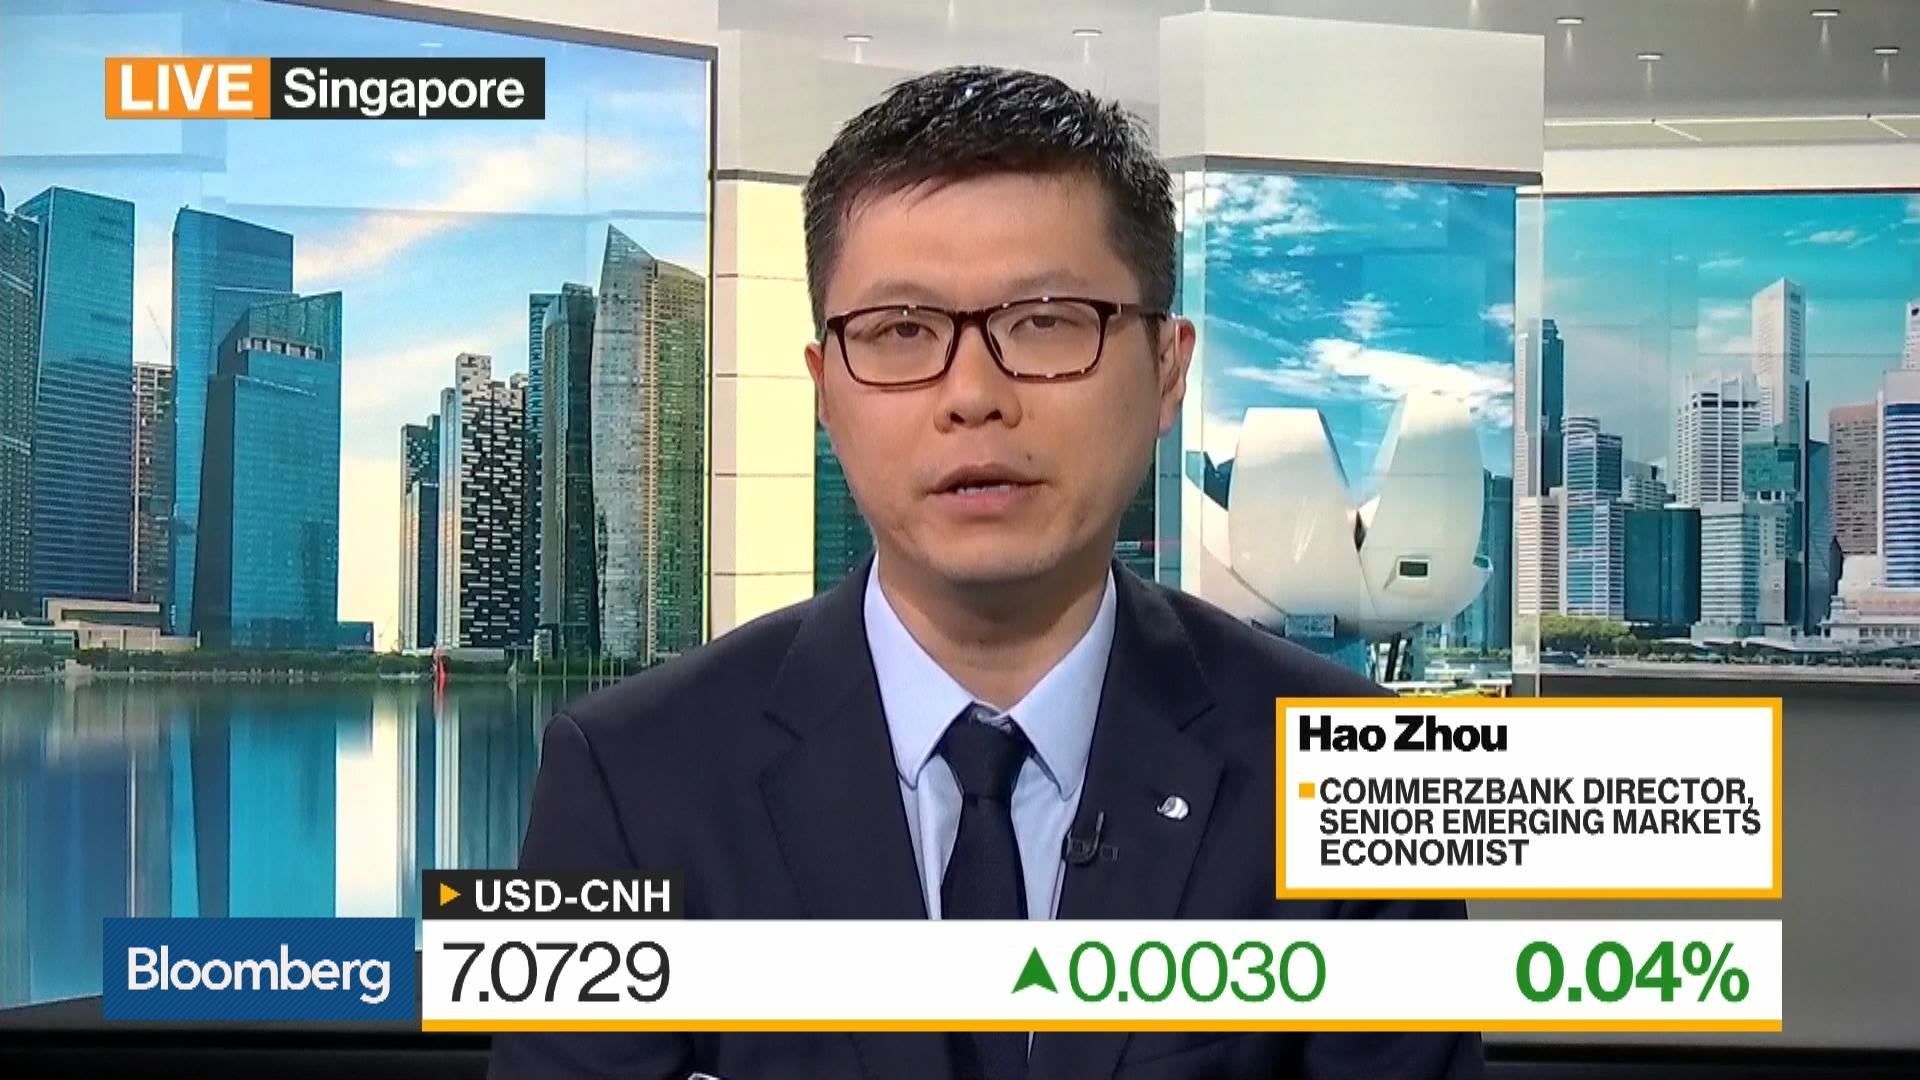 Hao Zhou, director at Commerzbank, on Chinese Yuan, Economy, Policies